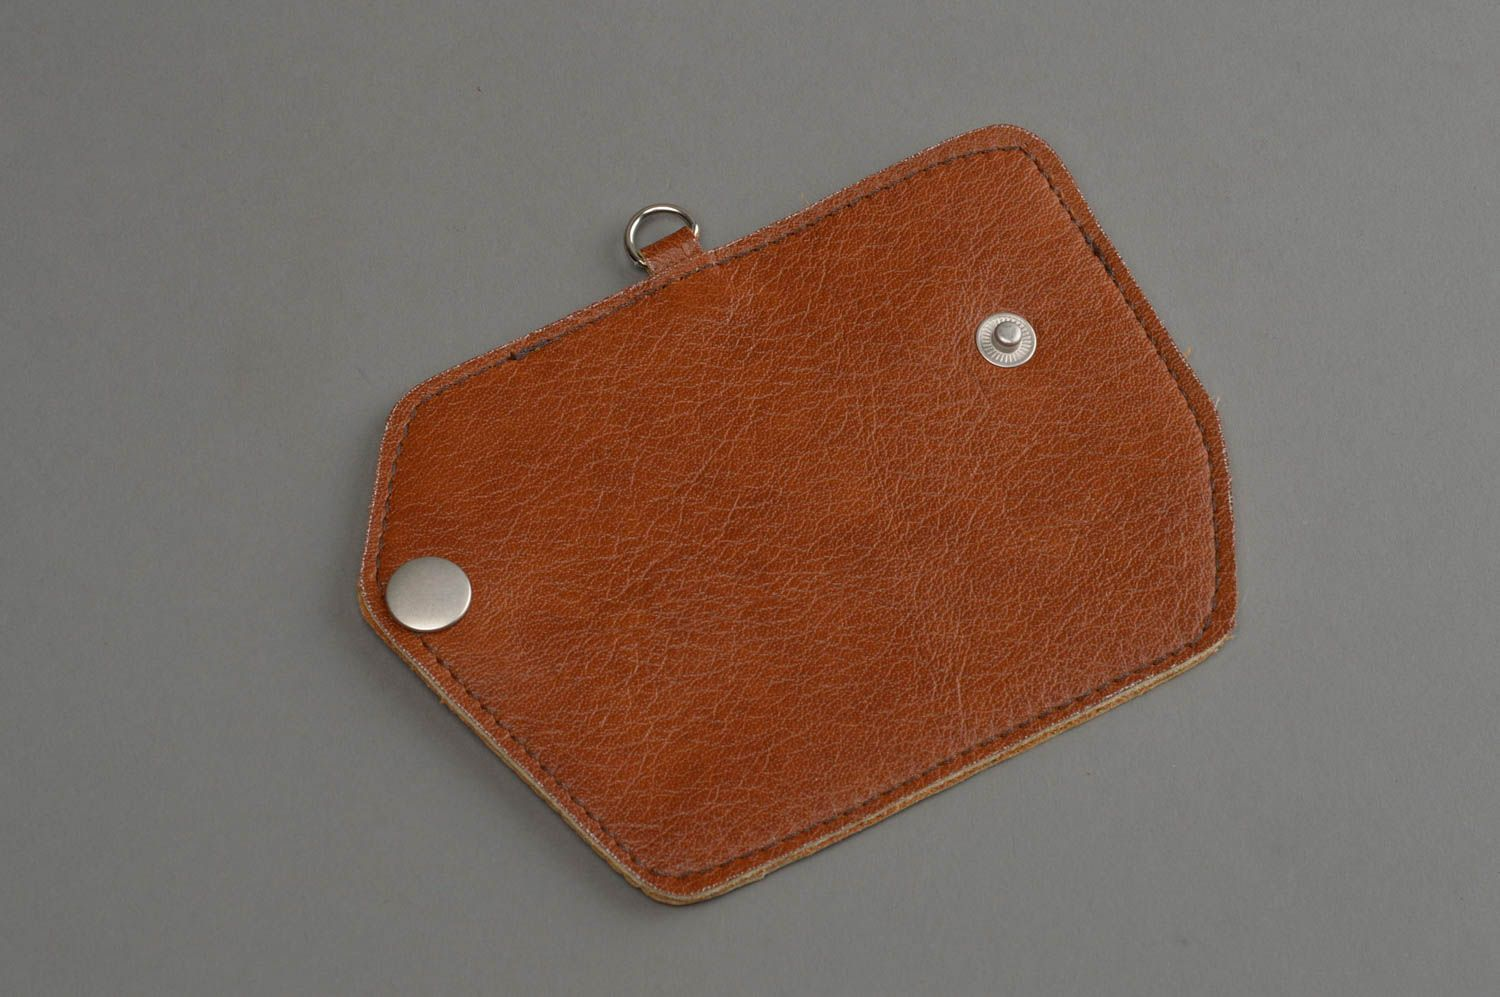 purses Beautiful handmade leather key case unusual key purse fashion leather accessory - MADEheart.com